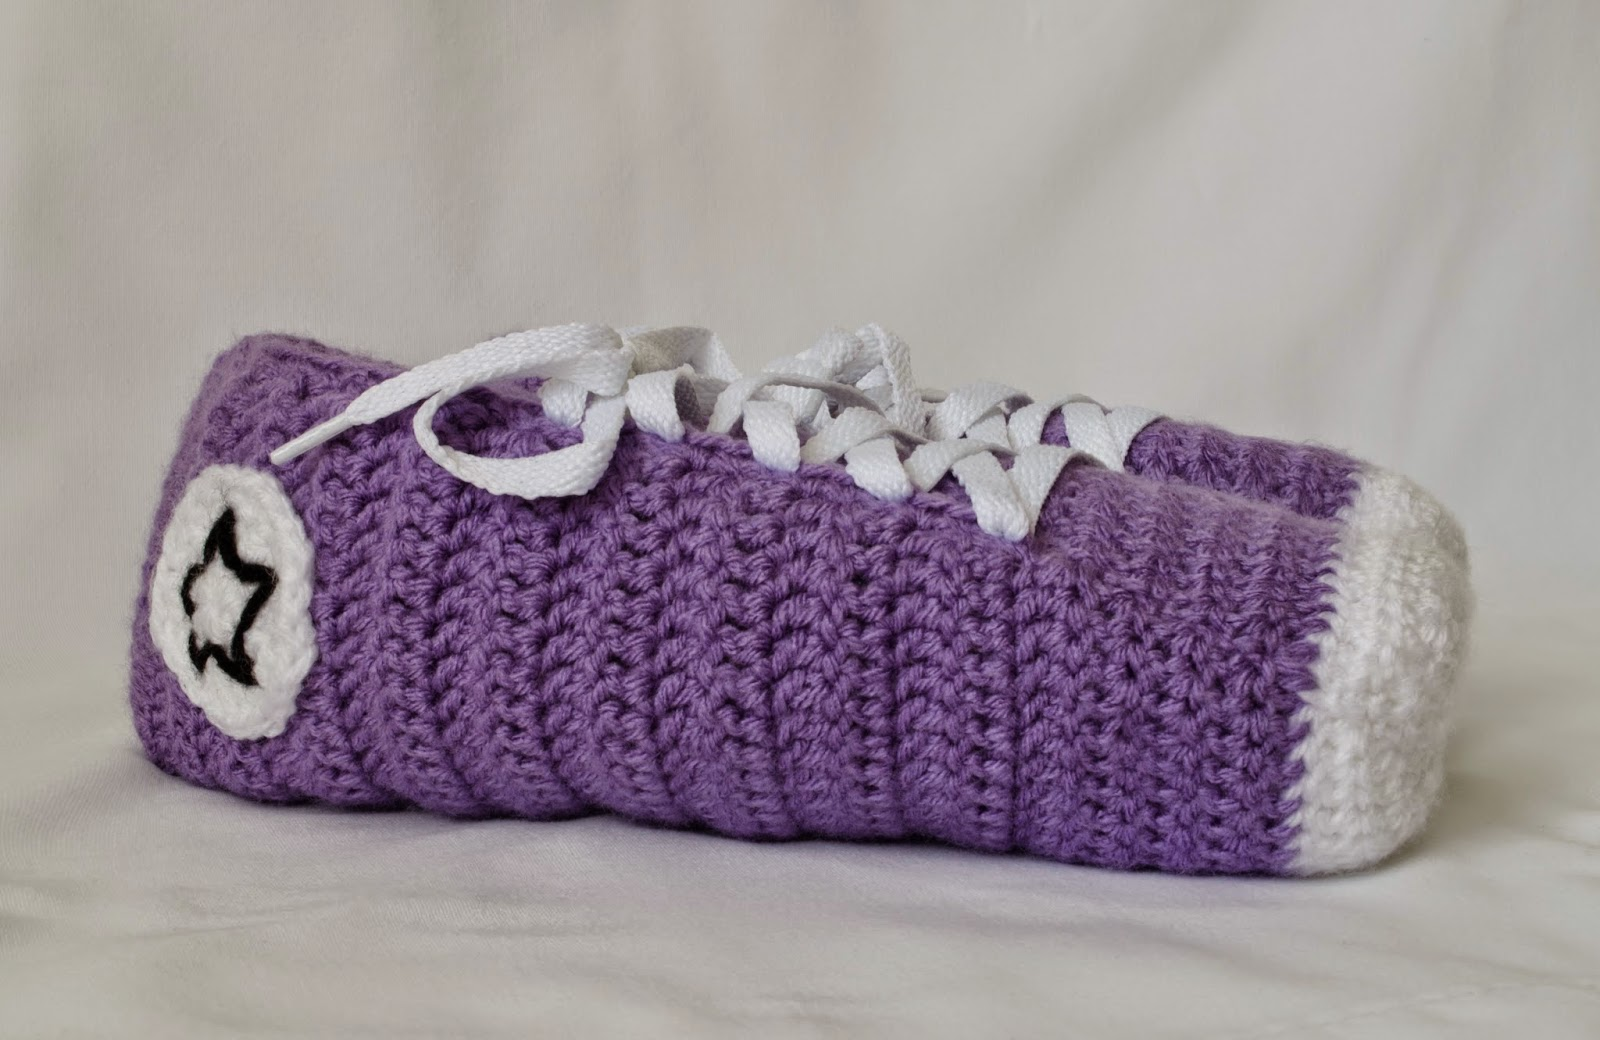 Crochet Pattern For Converse Slippers : Make ALL The Things!: Converse Slipper Crochet Pattern